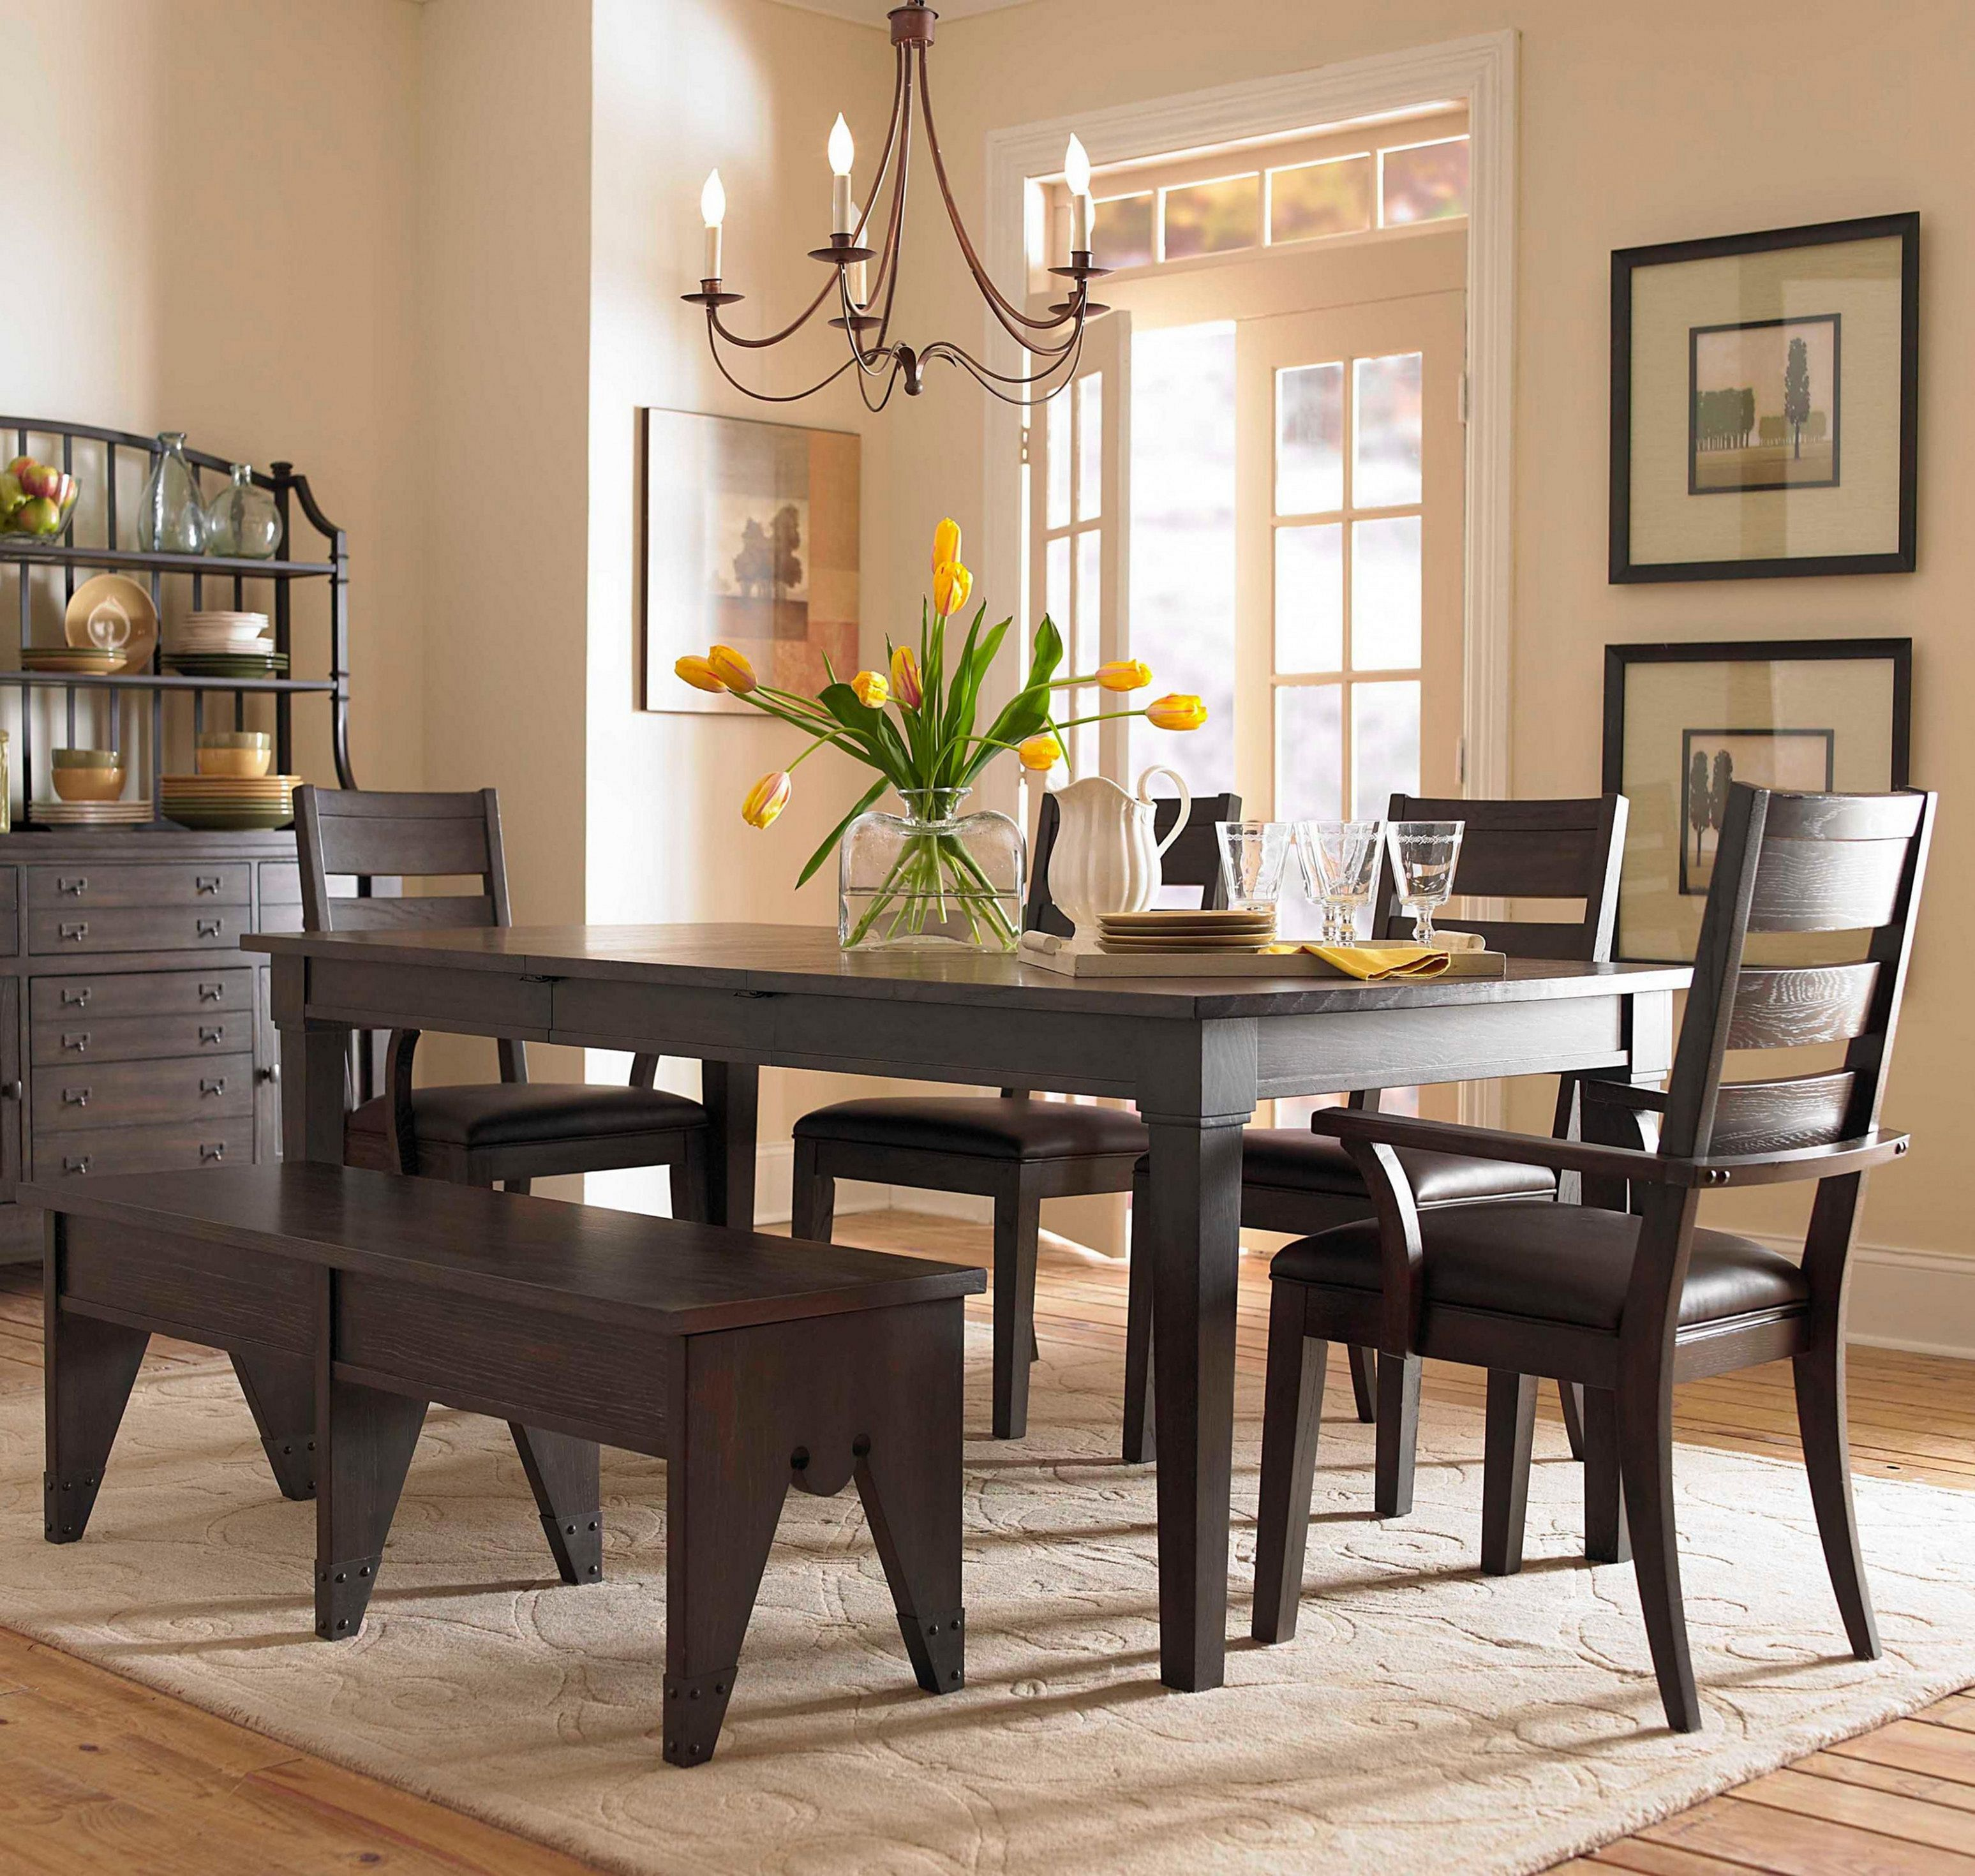 20 Simple Dining Room Table Decor For Stunning Home Inspiration